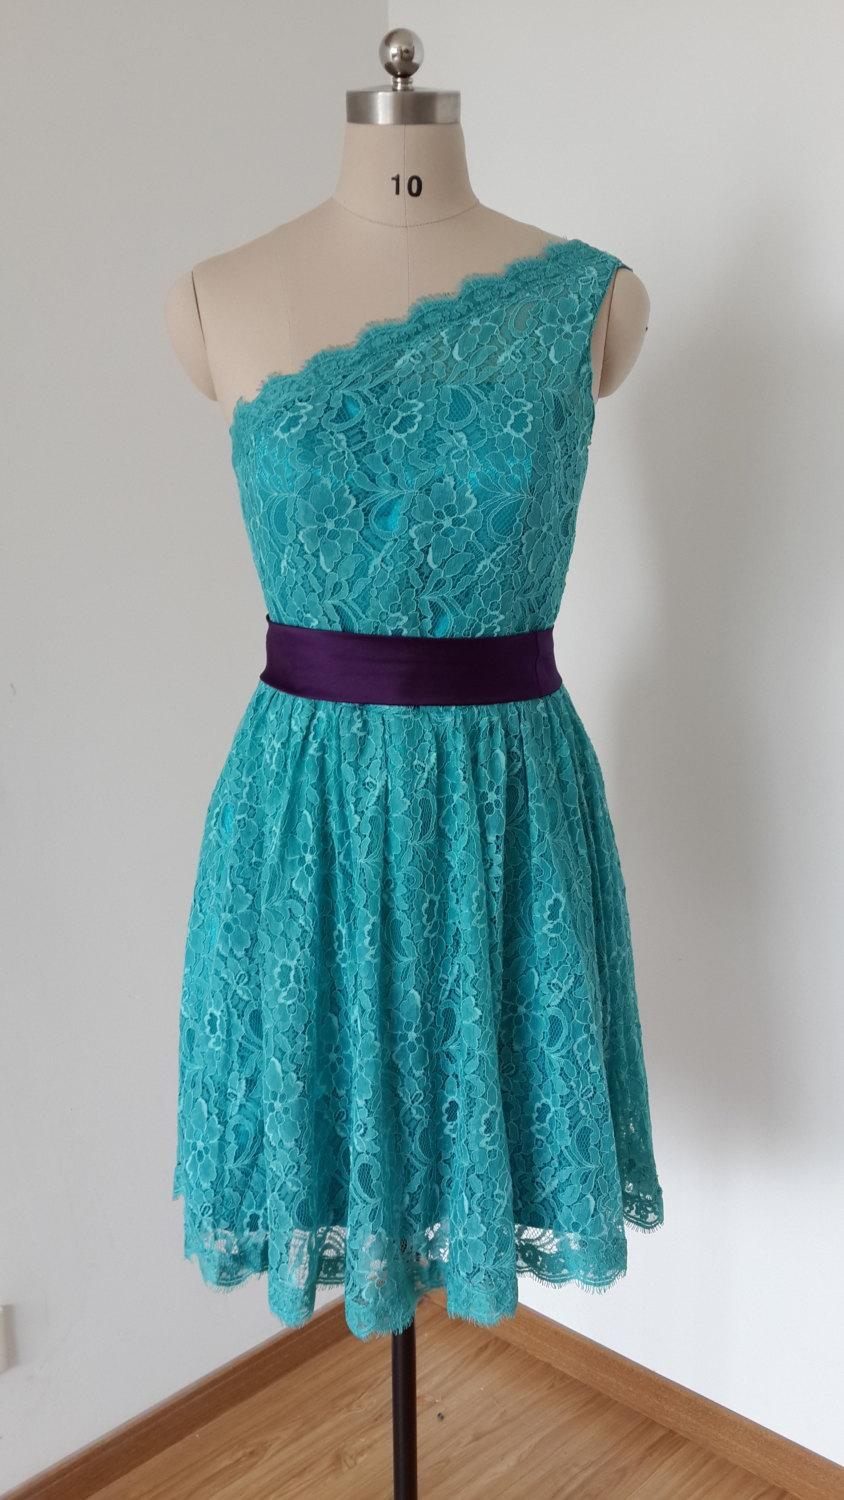 2015 One-shoulder Teal Lace Short Bridesmaid Dress With Dark Purple ...